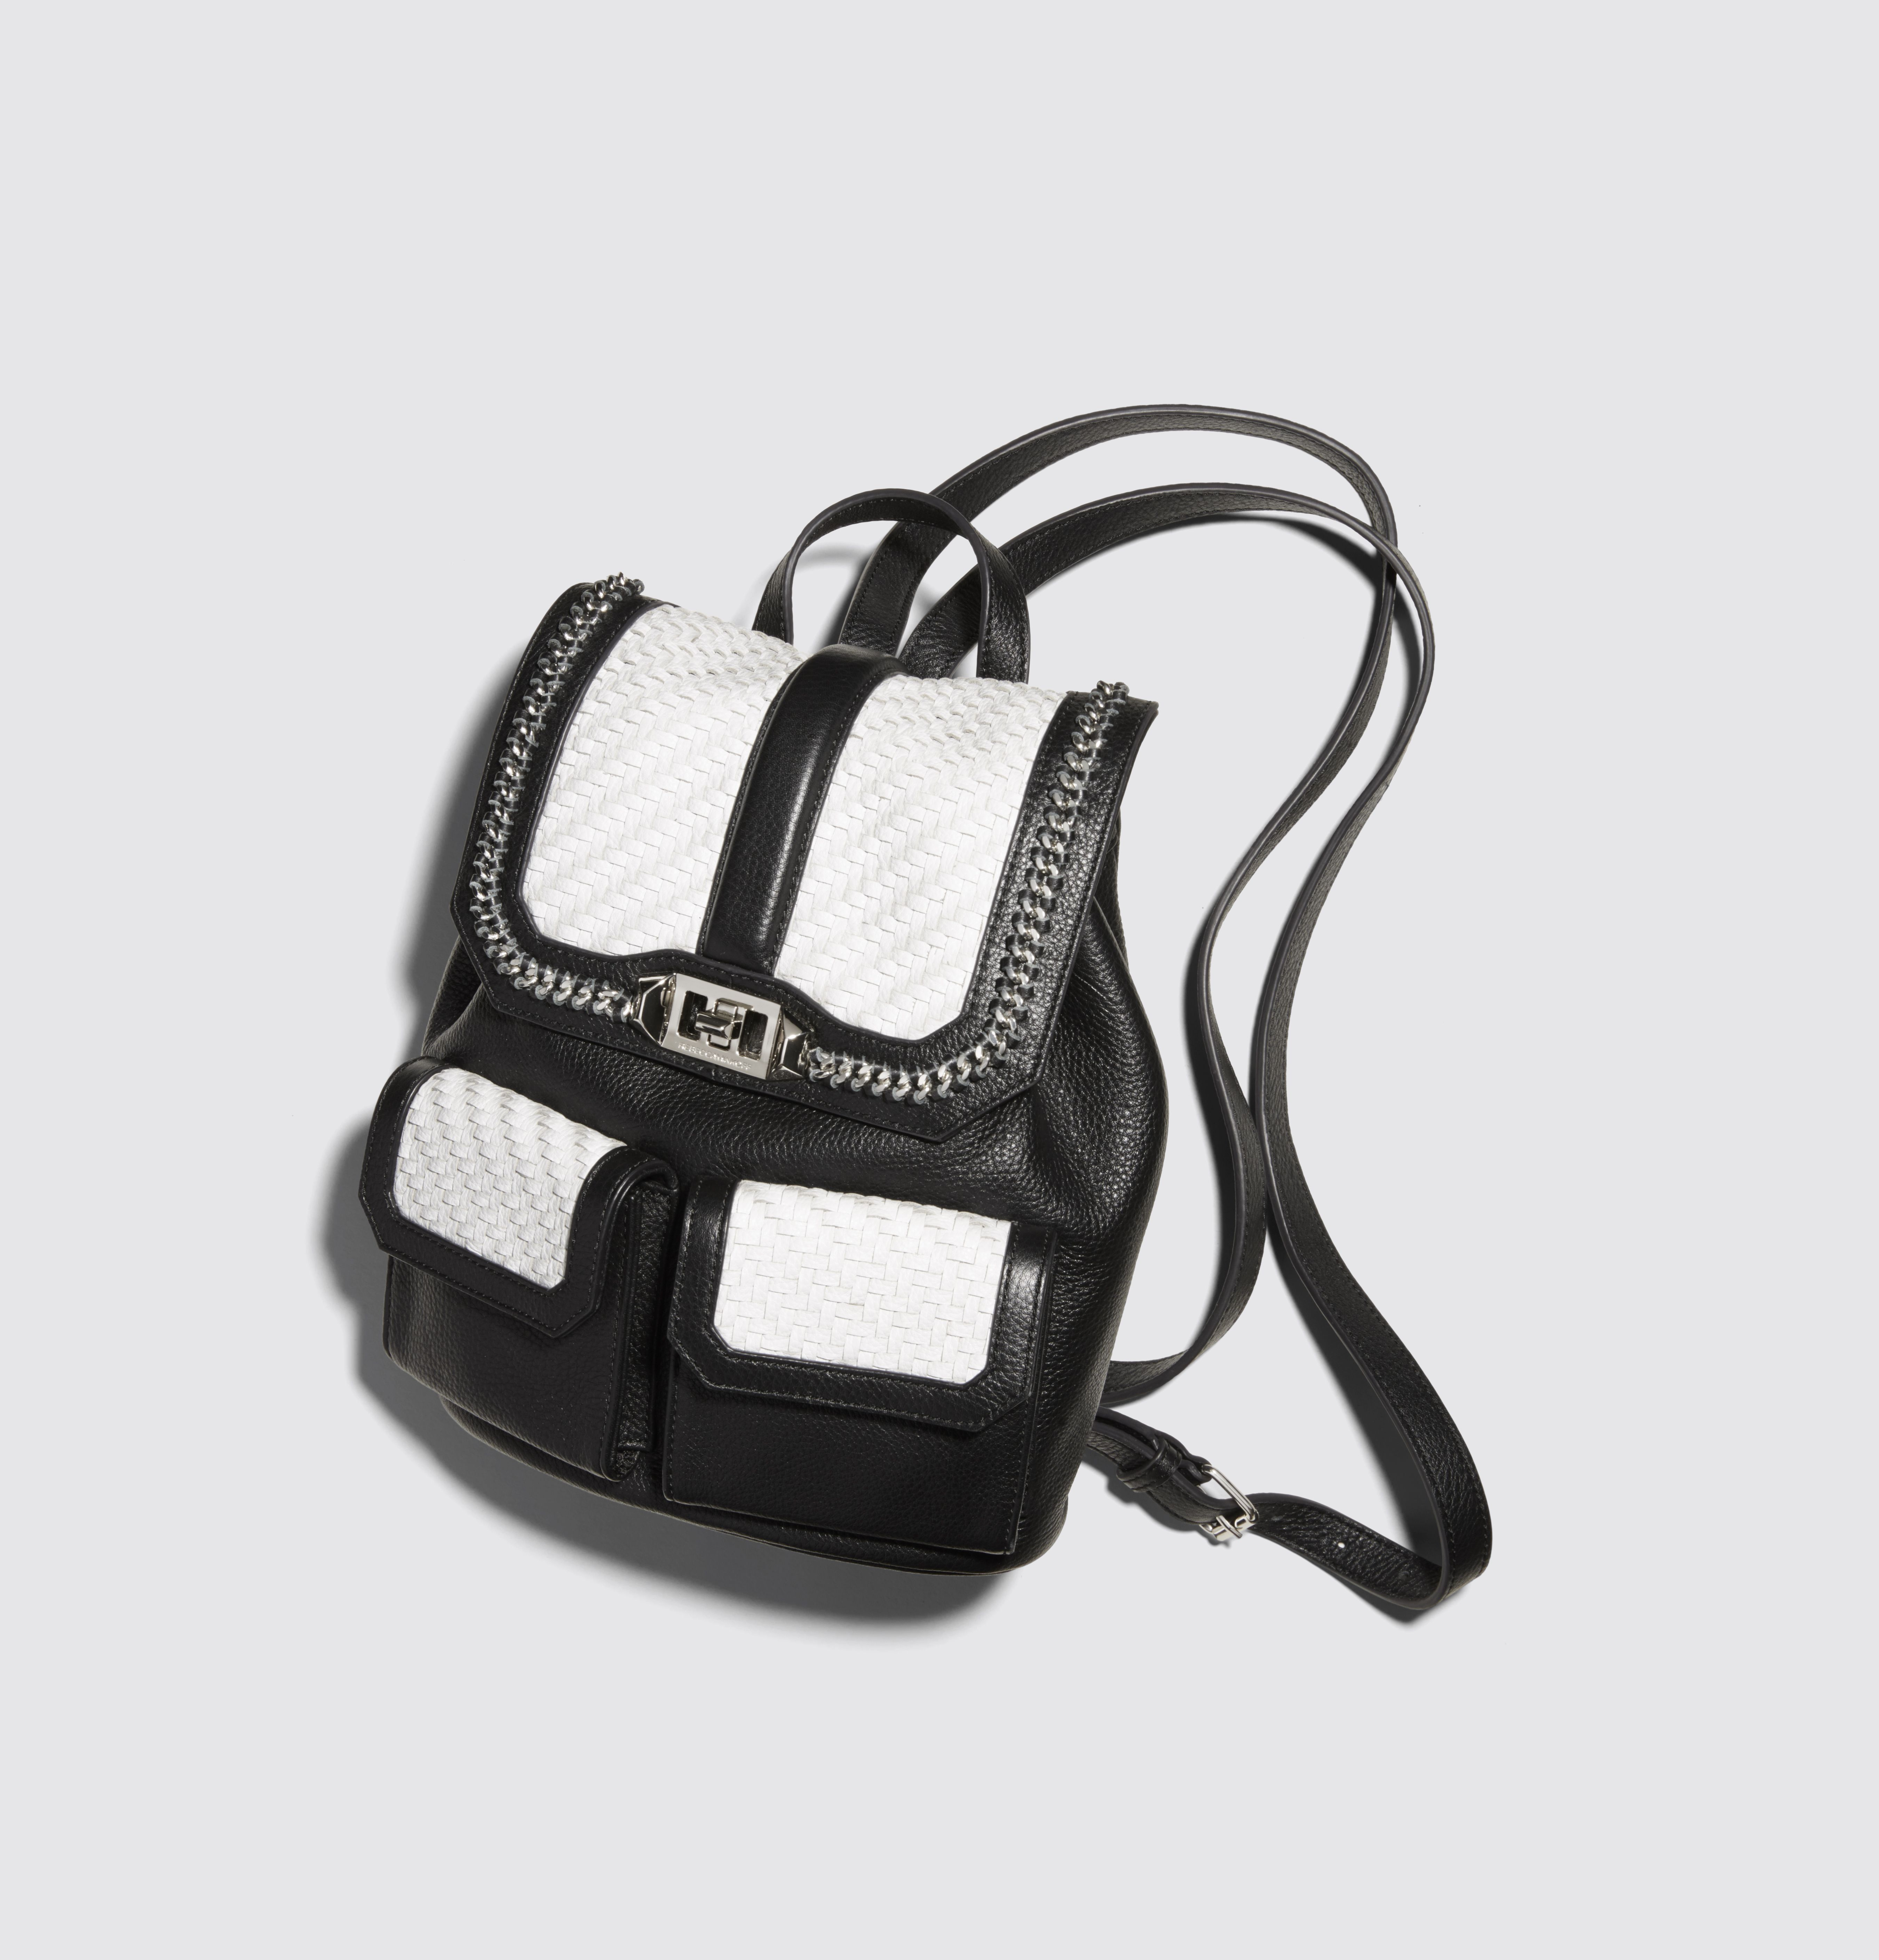 This stylish black/white leather Rebecca Minkoff backpack is exclusive to Bloomie's.